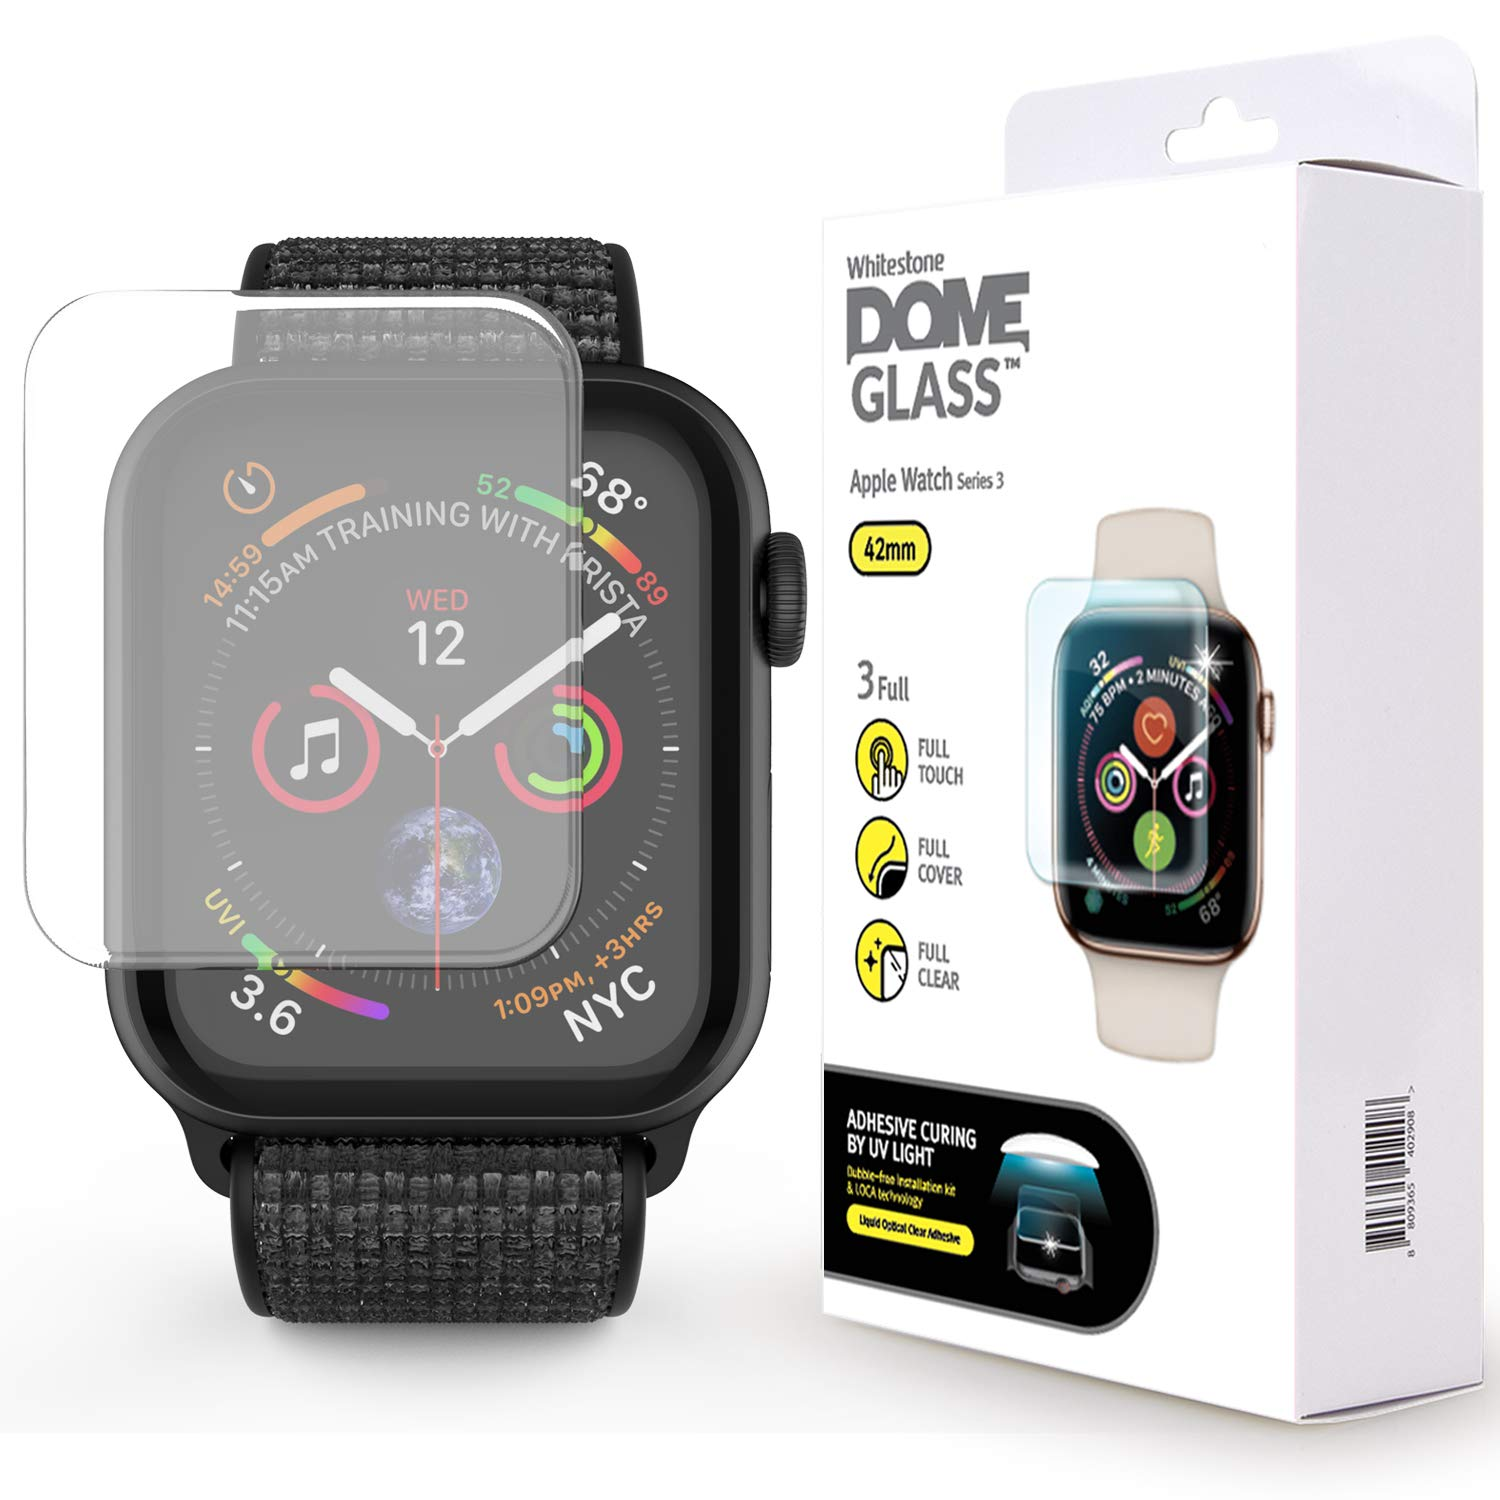 Apple Watch 42mm Screen Protector, [DOME GLASS] Liquid Adhesive for Full Coverage Tempered Glass [NO UV Light Included] and Protection by Whitestone for The Apple Watch 3 - Replacement Kit ONLY